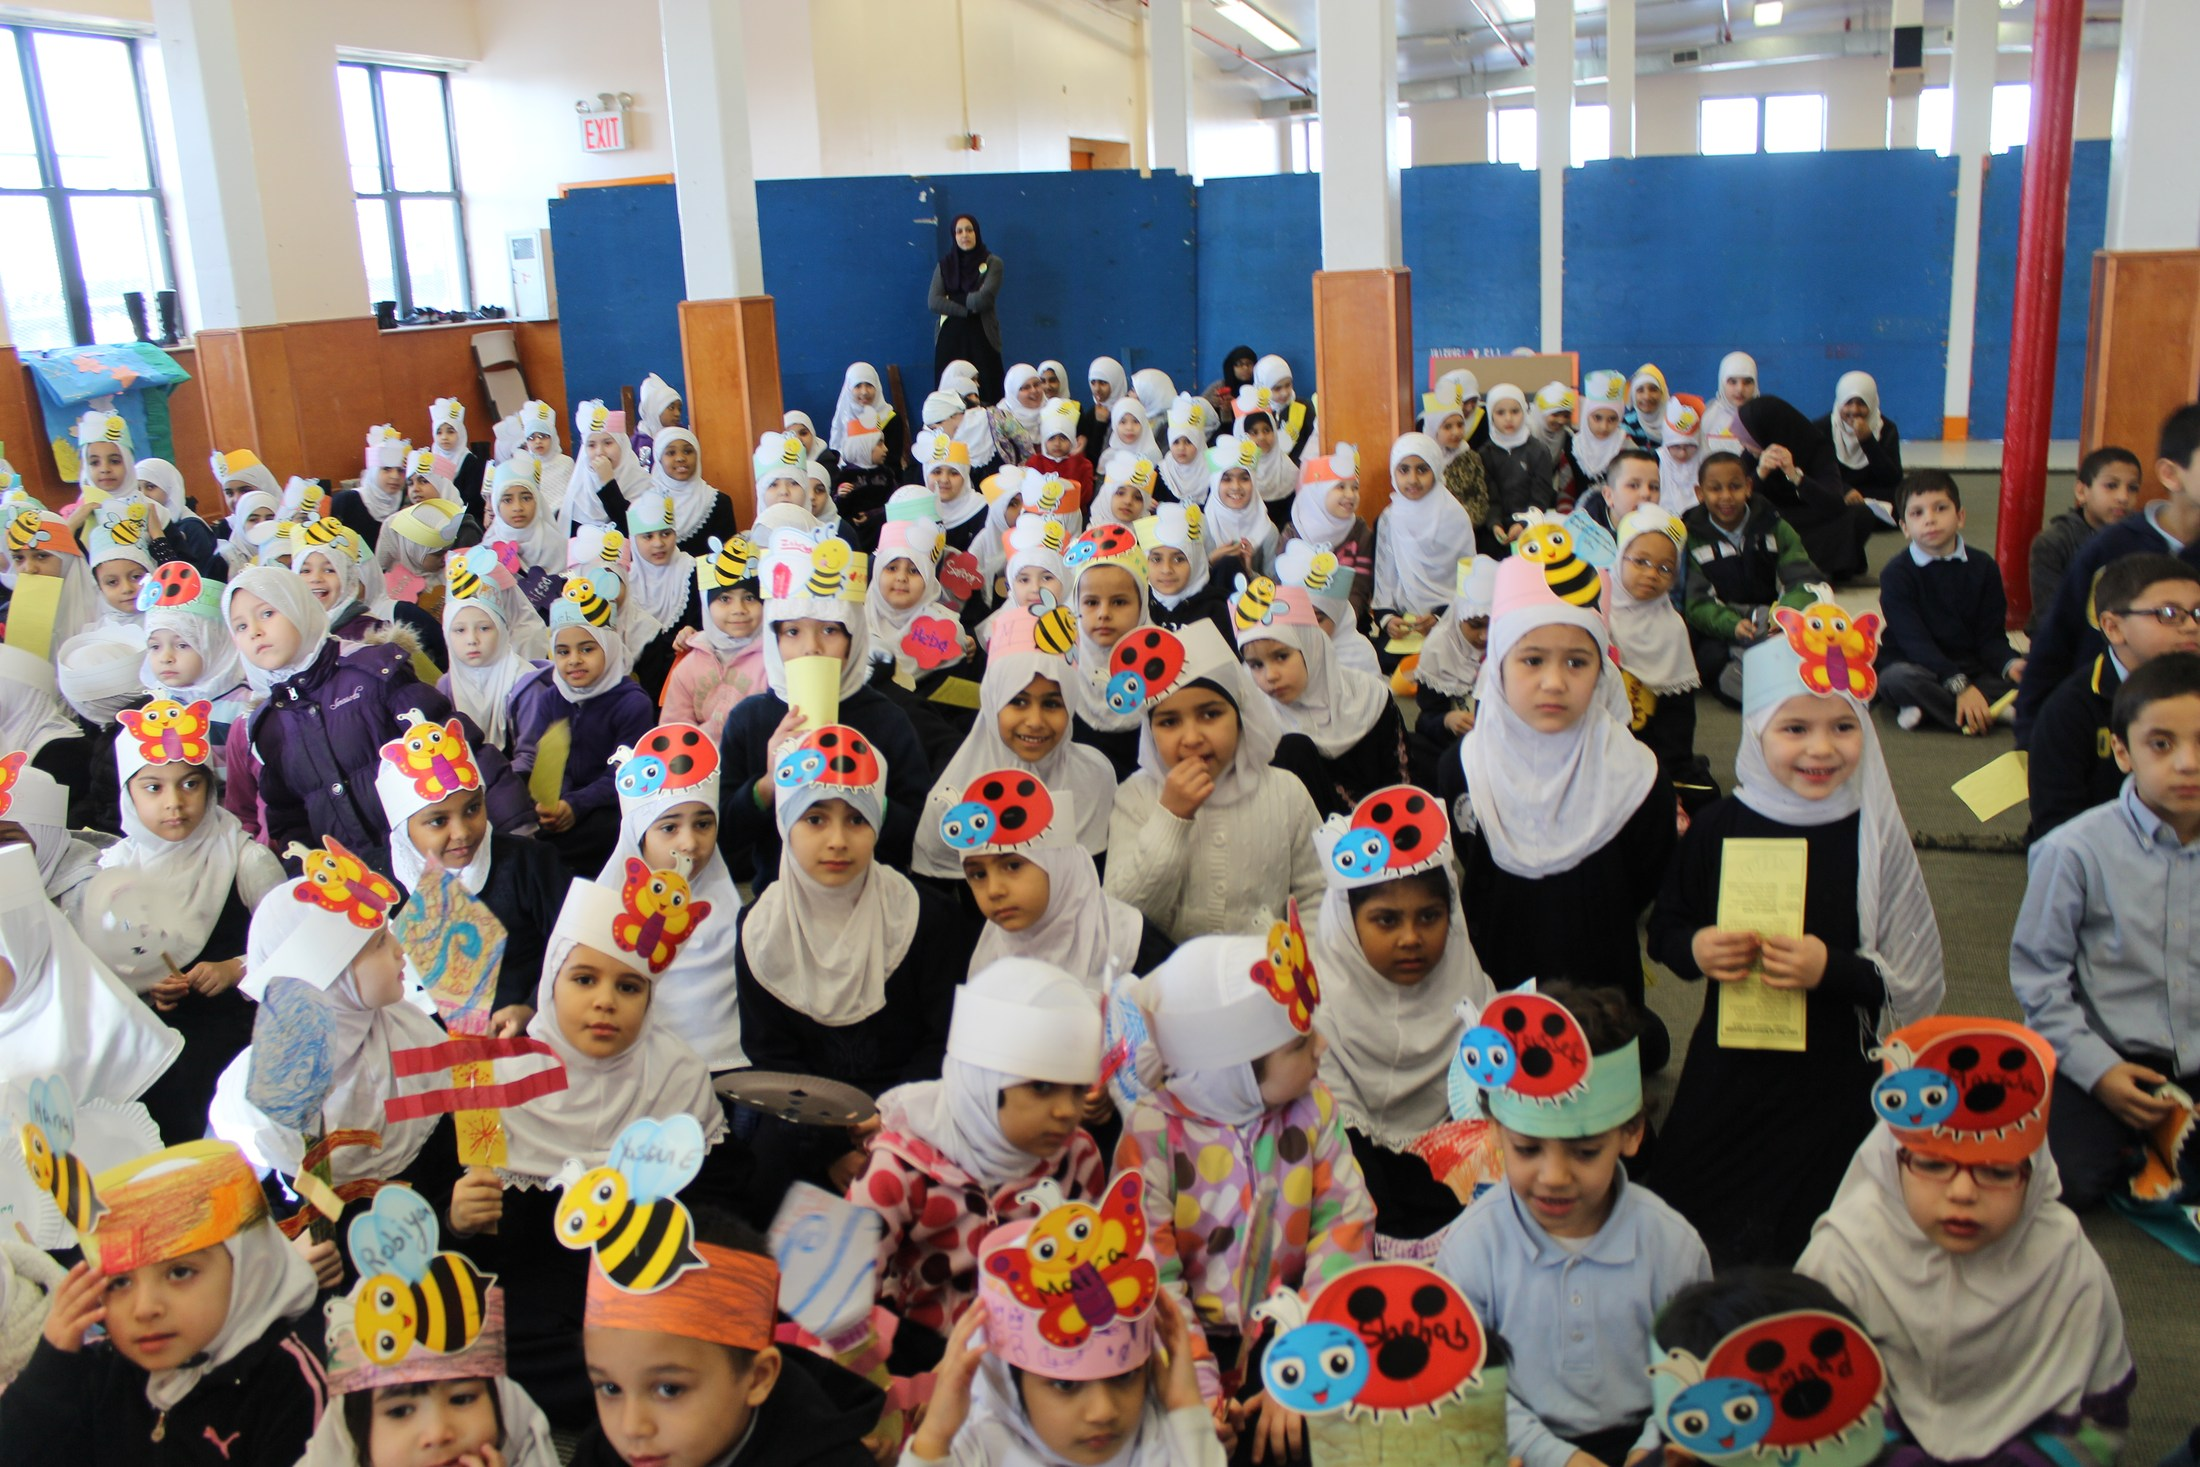 Welcome! – Early Childhood & Elementary School – Al-Madinah School